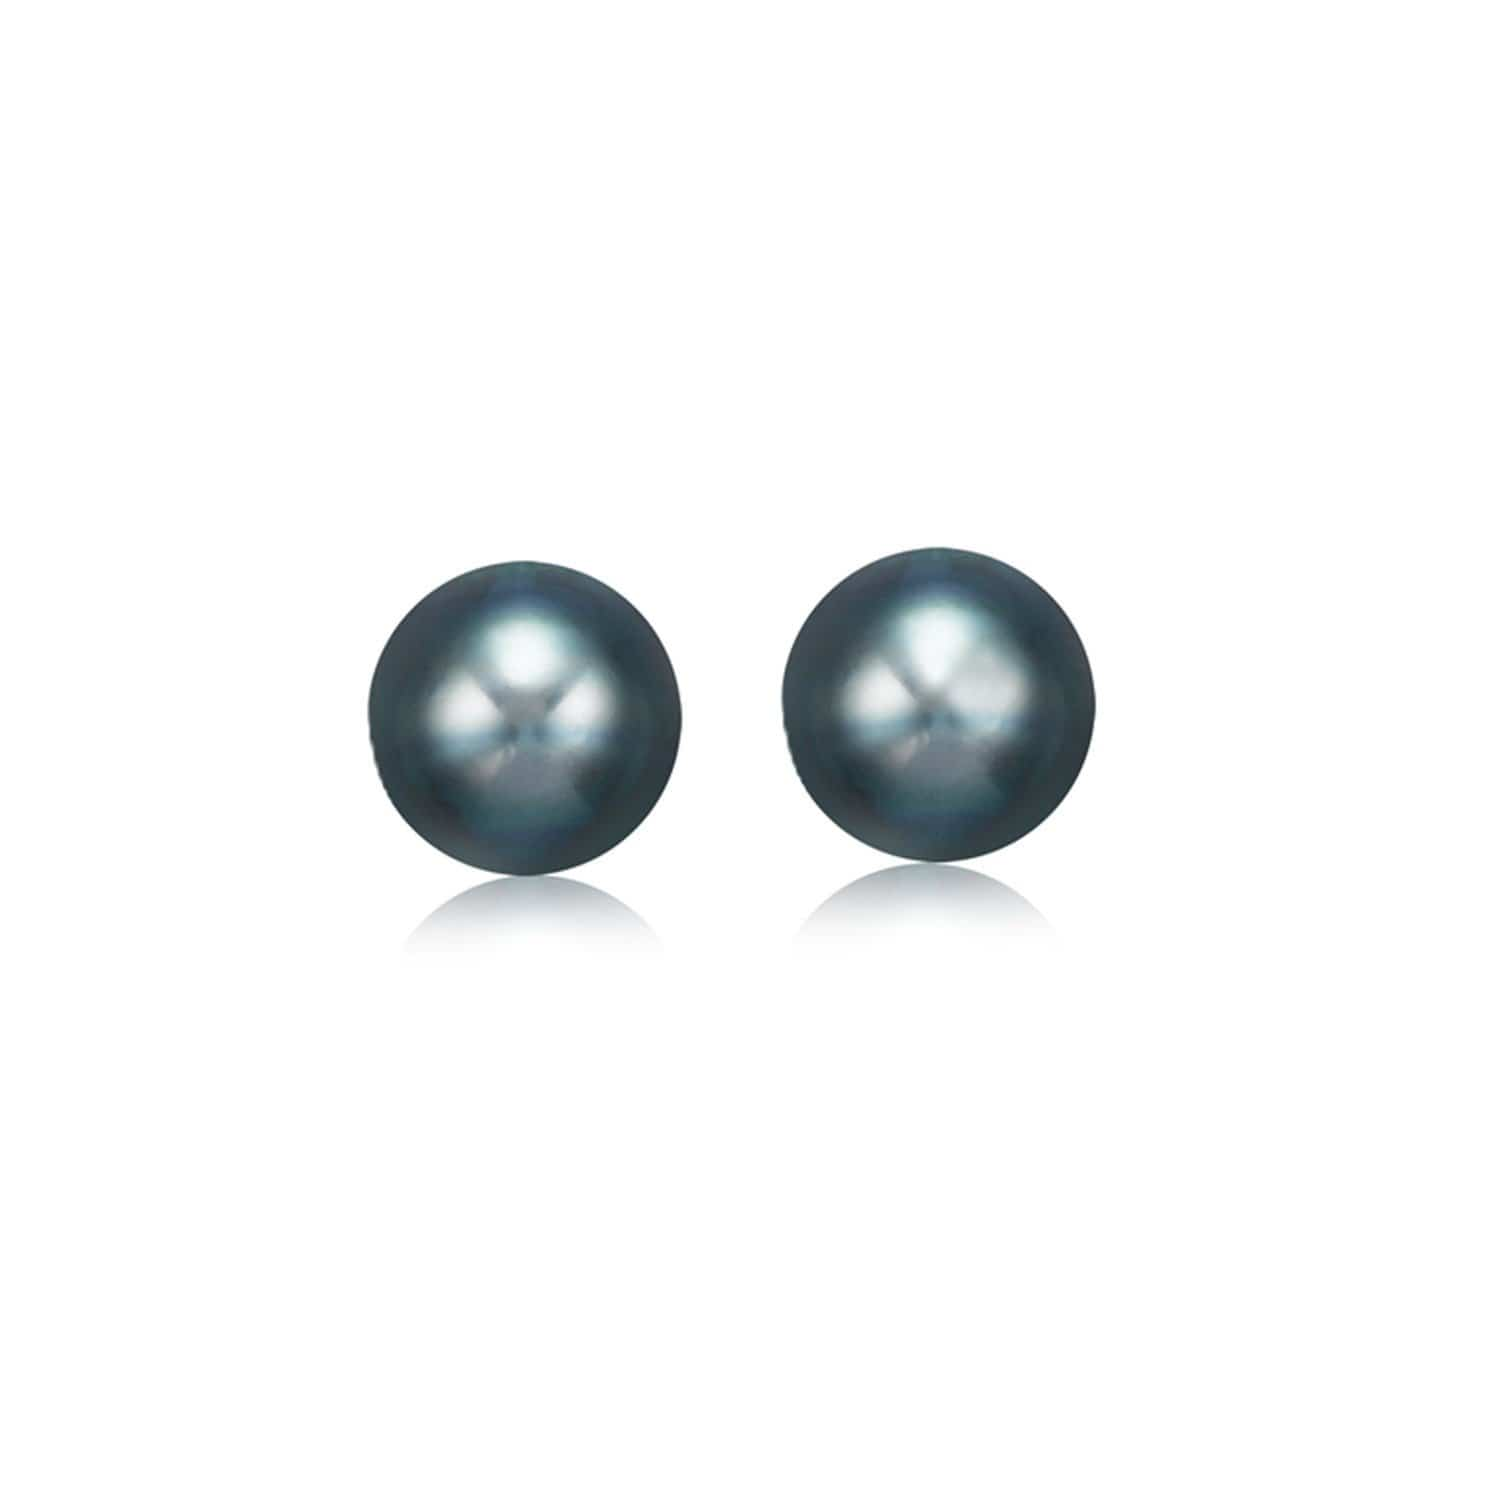 14K Yellow Gold Cultured Black Pearl Stud Earrings 7.0 mm